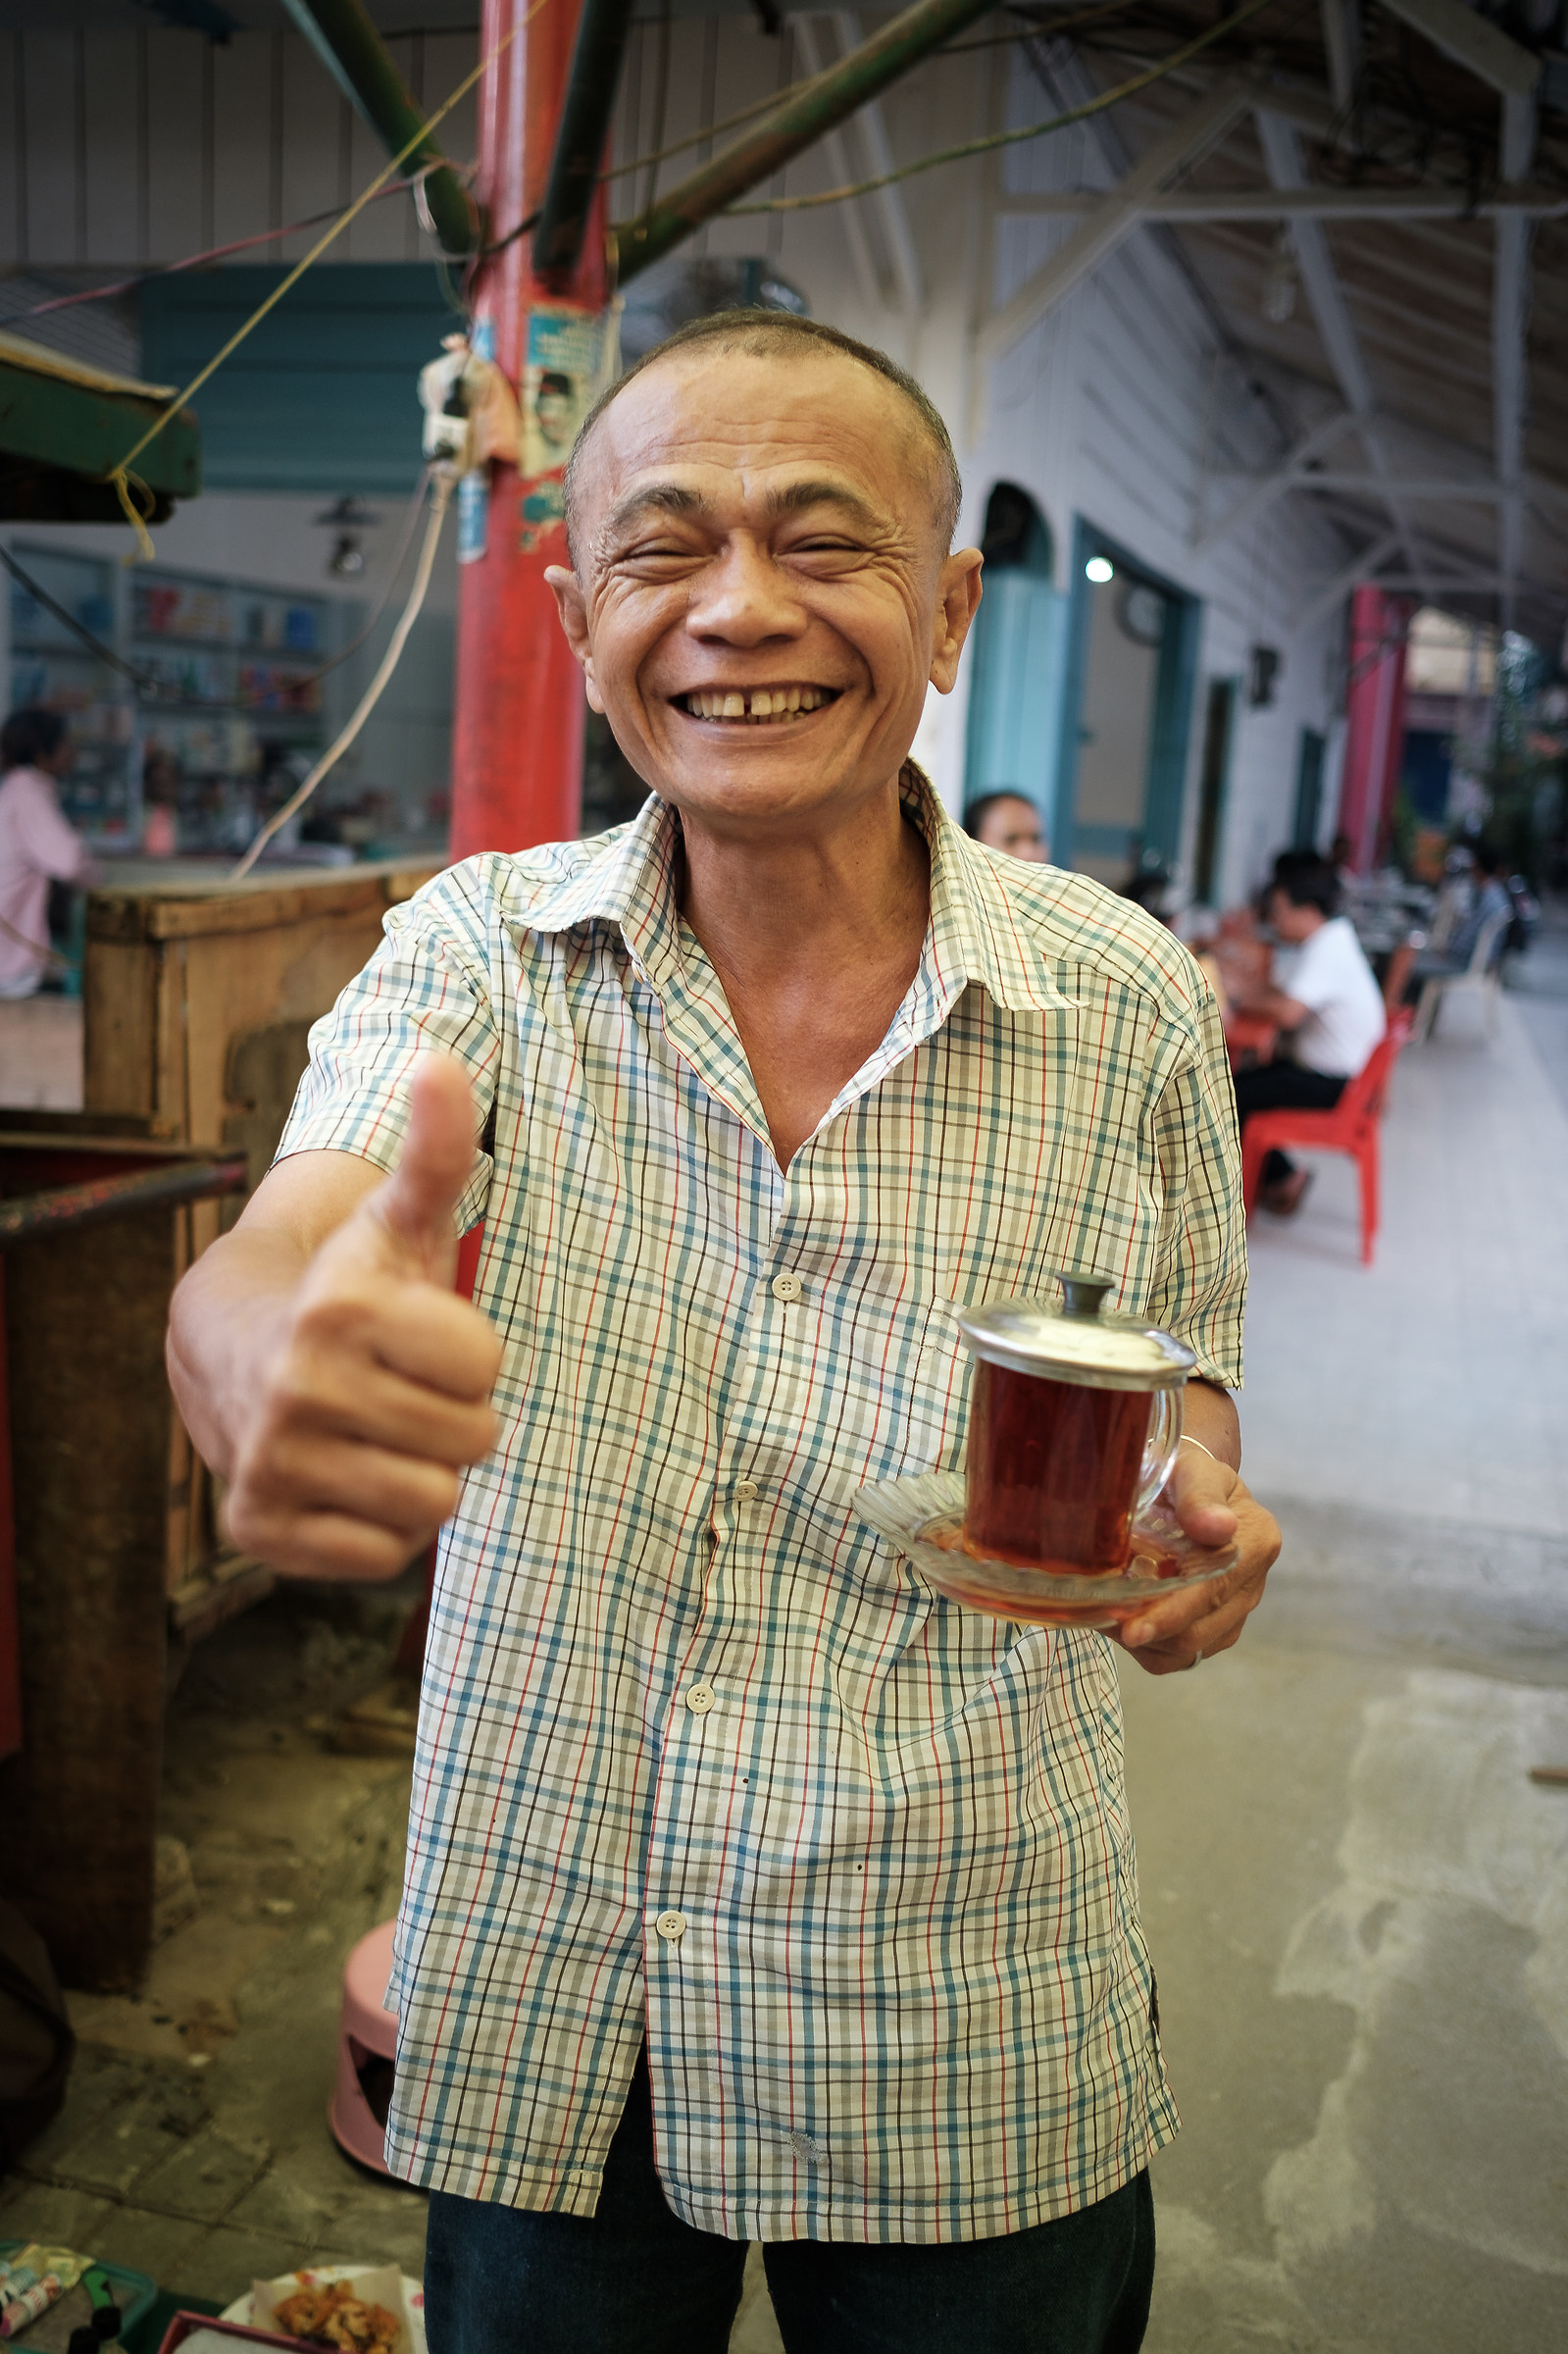 Indonesia- The faces in the markets - The bartender of Tea...